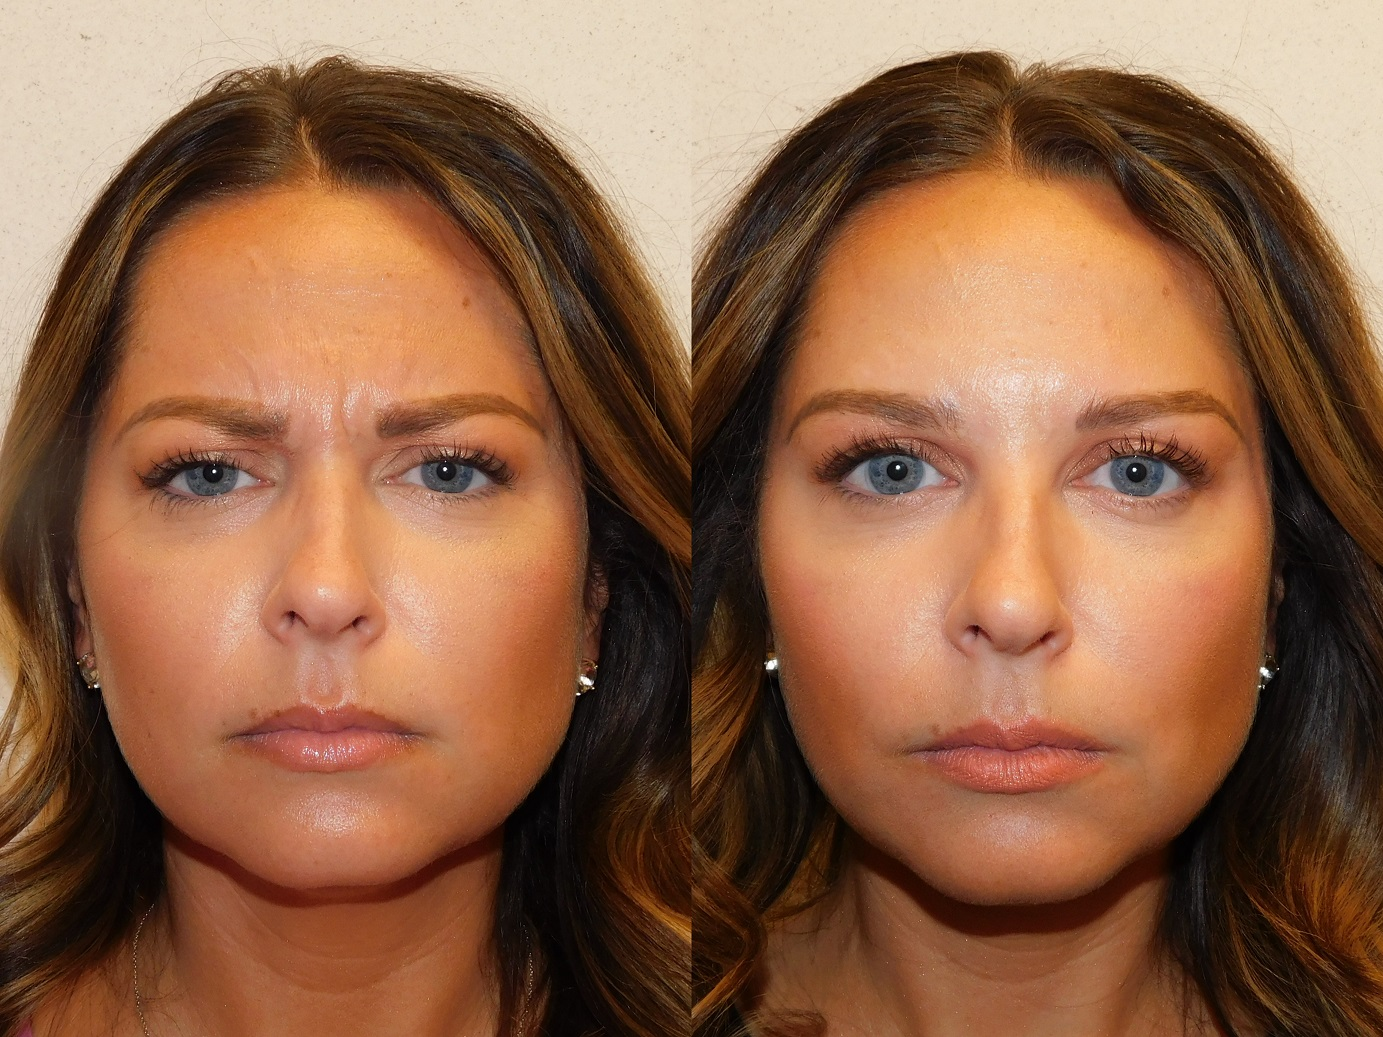 Botox results-Jeuveau-#NEWTOX-Dr. Joel Schlessinger-LovelySkin Omaha-Omaha Blogger-Omaha Beauty Blogger-Beauty Blog Post-Botox Results-Sabby Style-8